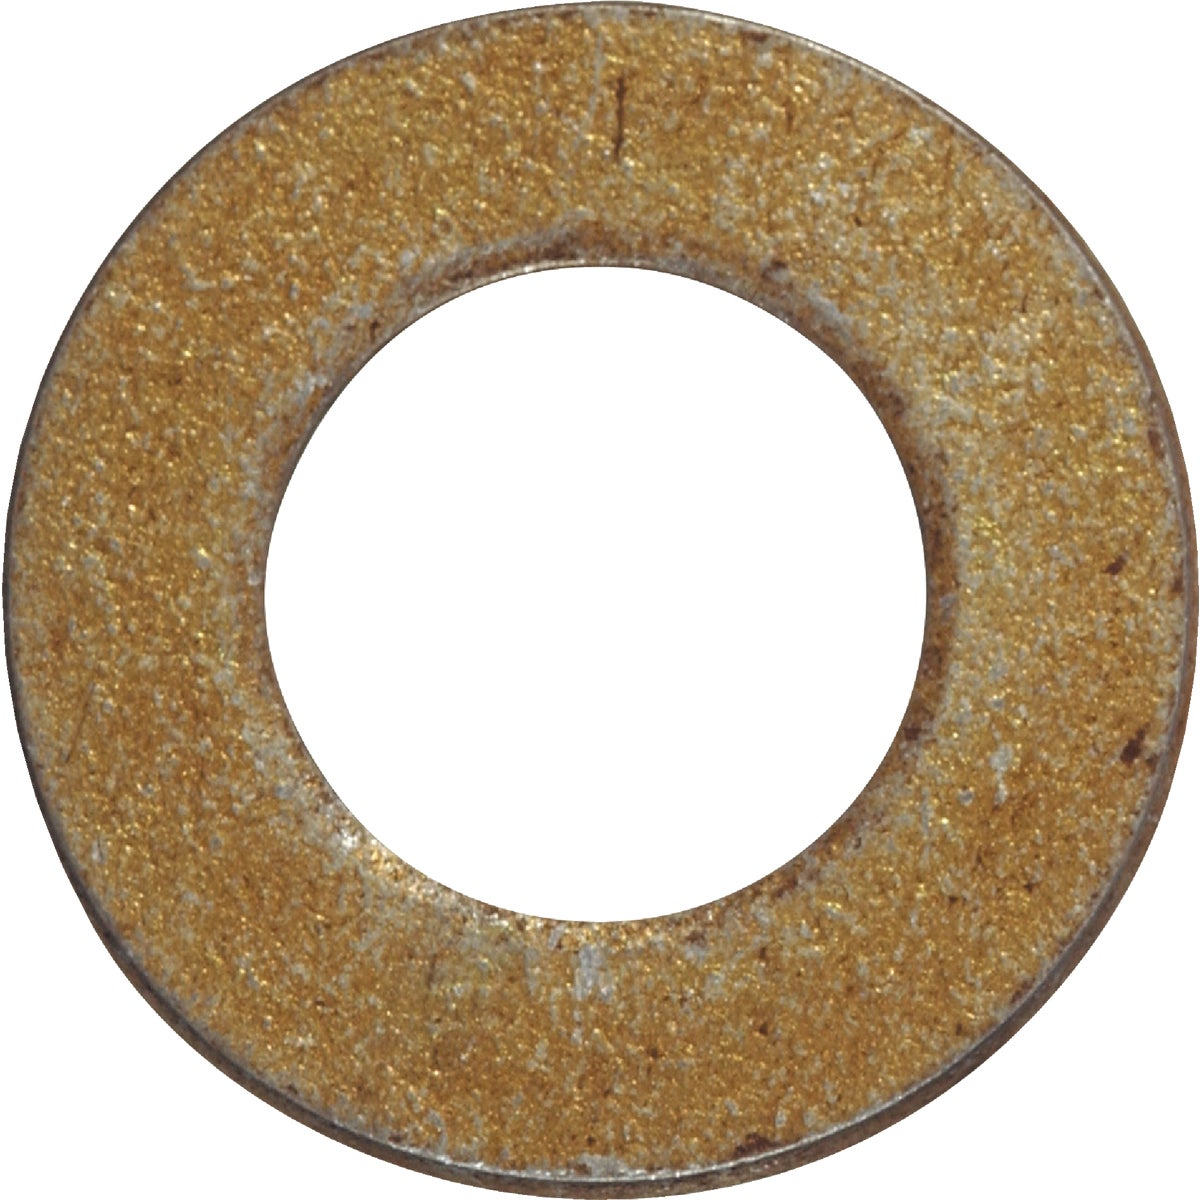 100 5/16HRDND FLT WASHER - 280302 by Hillman Fastener